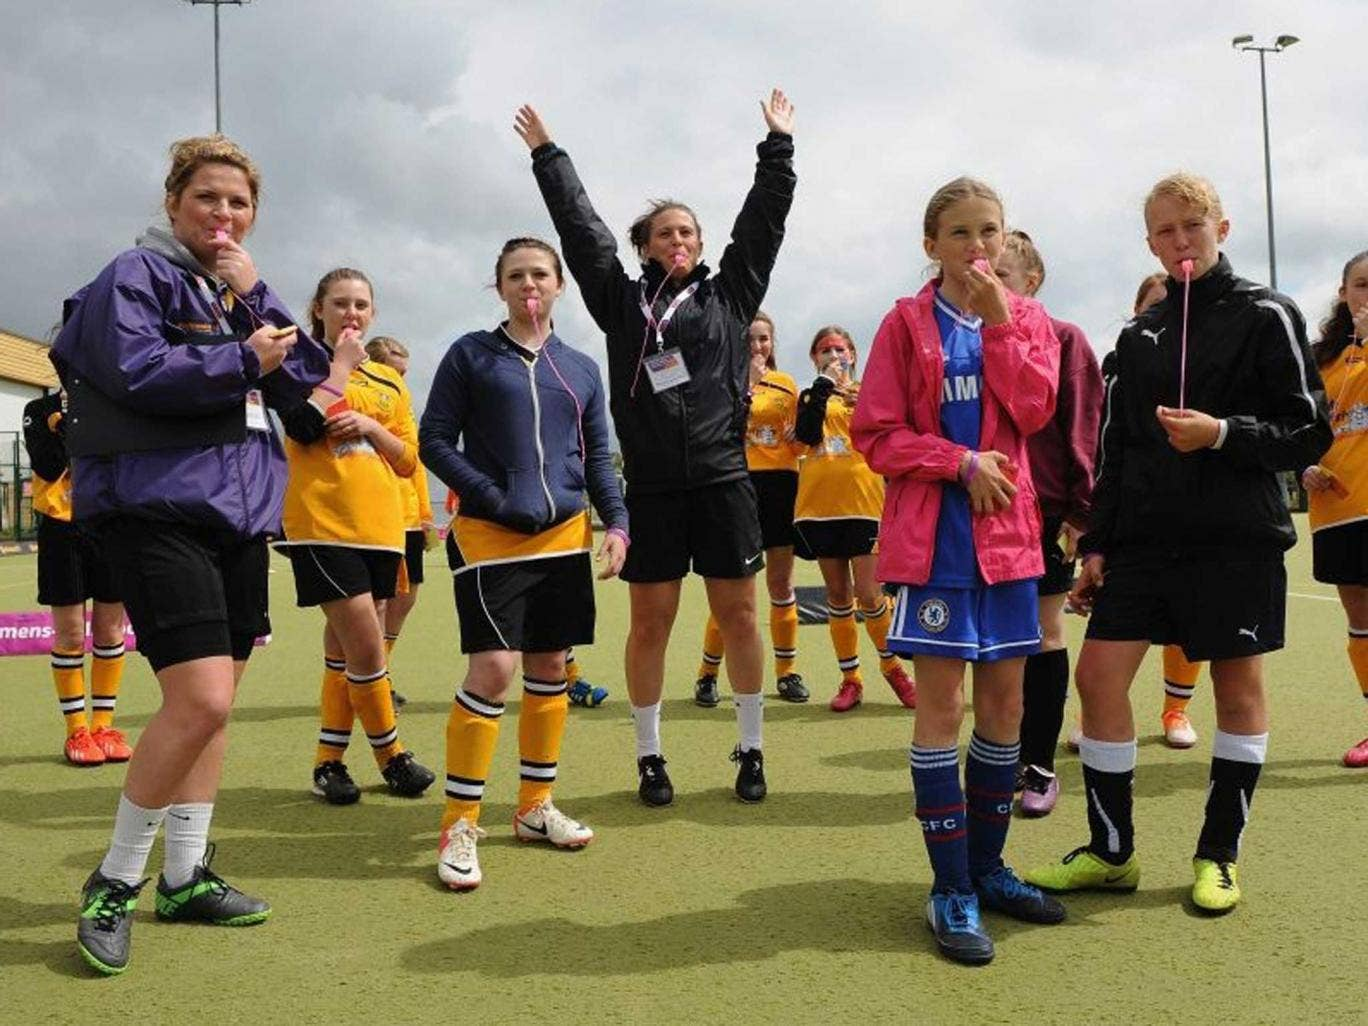 Girls getting fit and enjoying football in a refereeing workshop